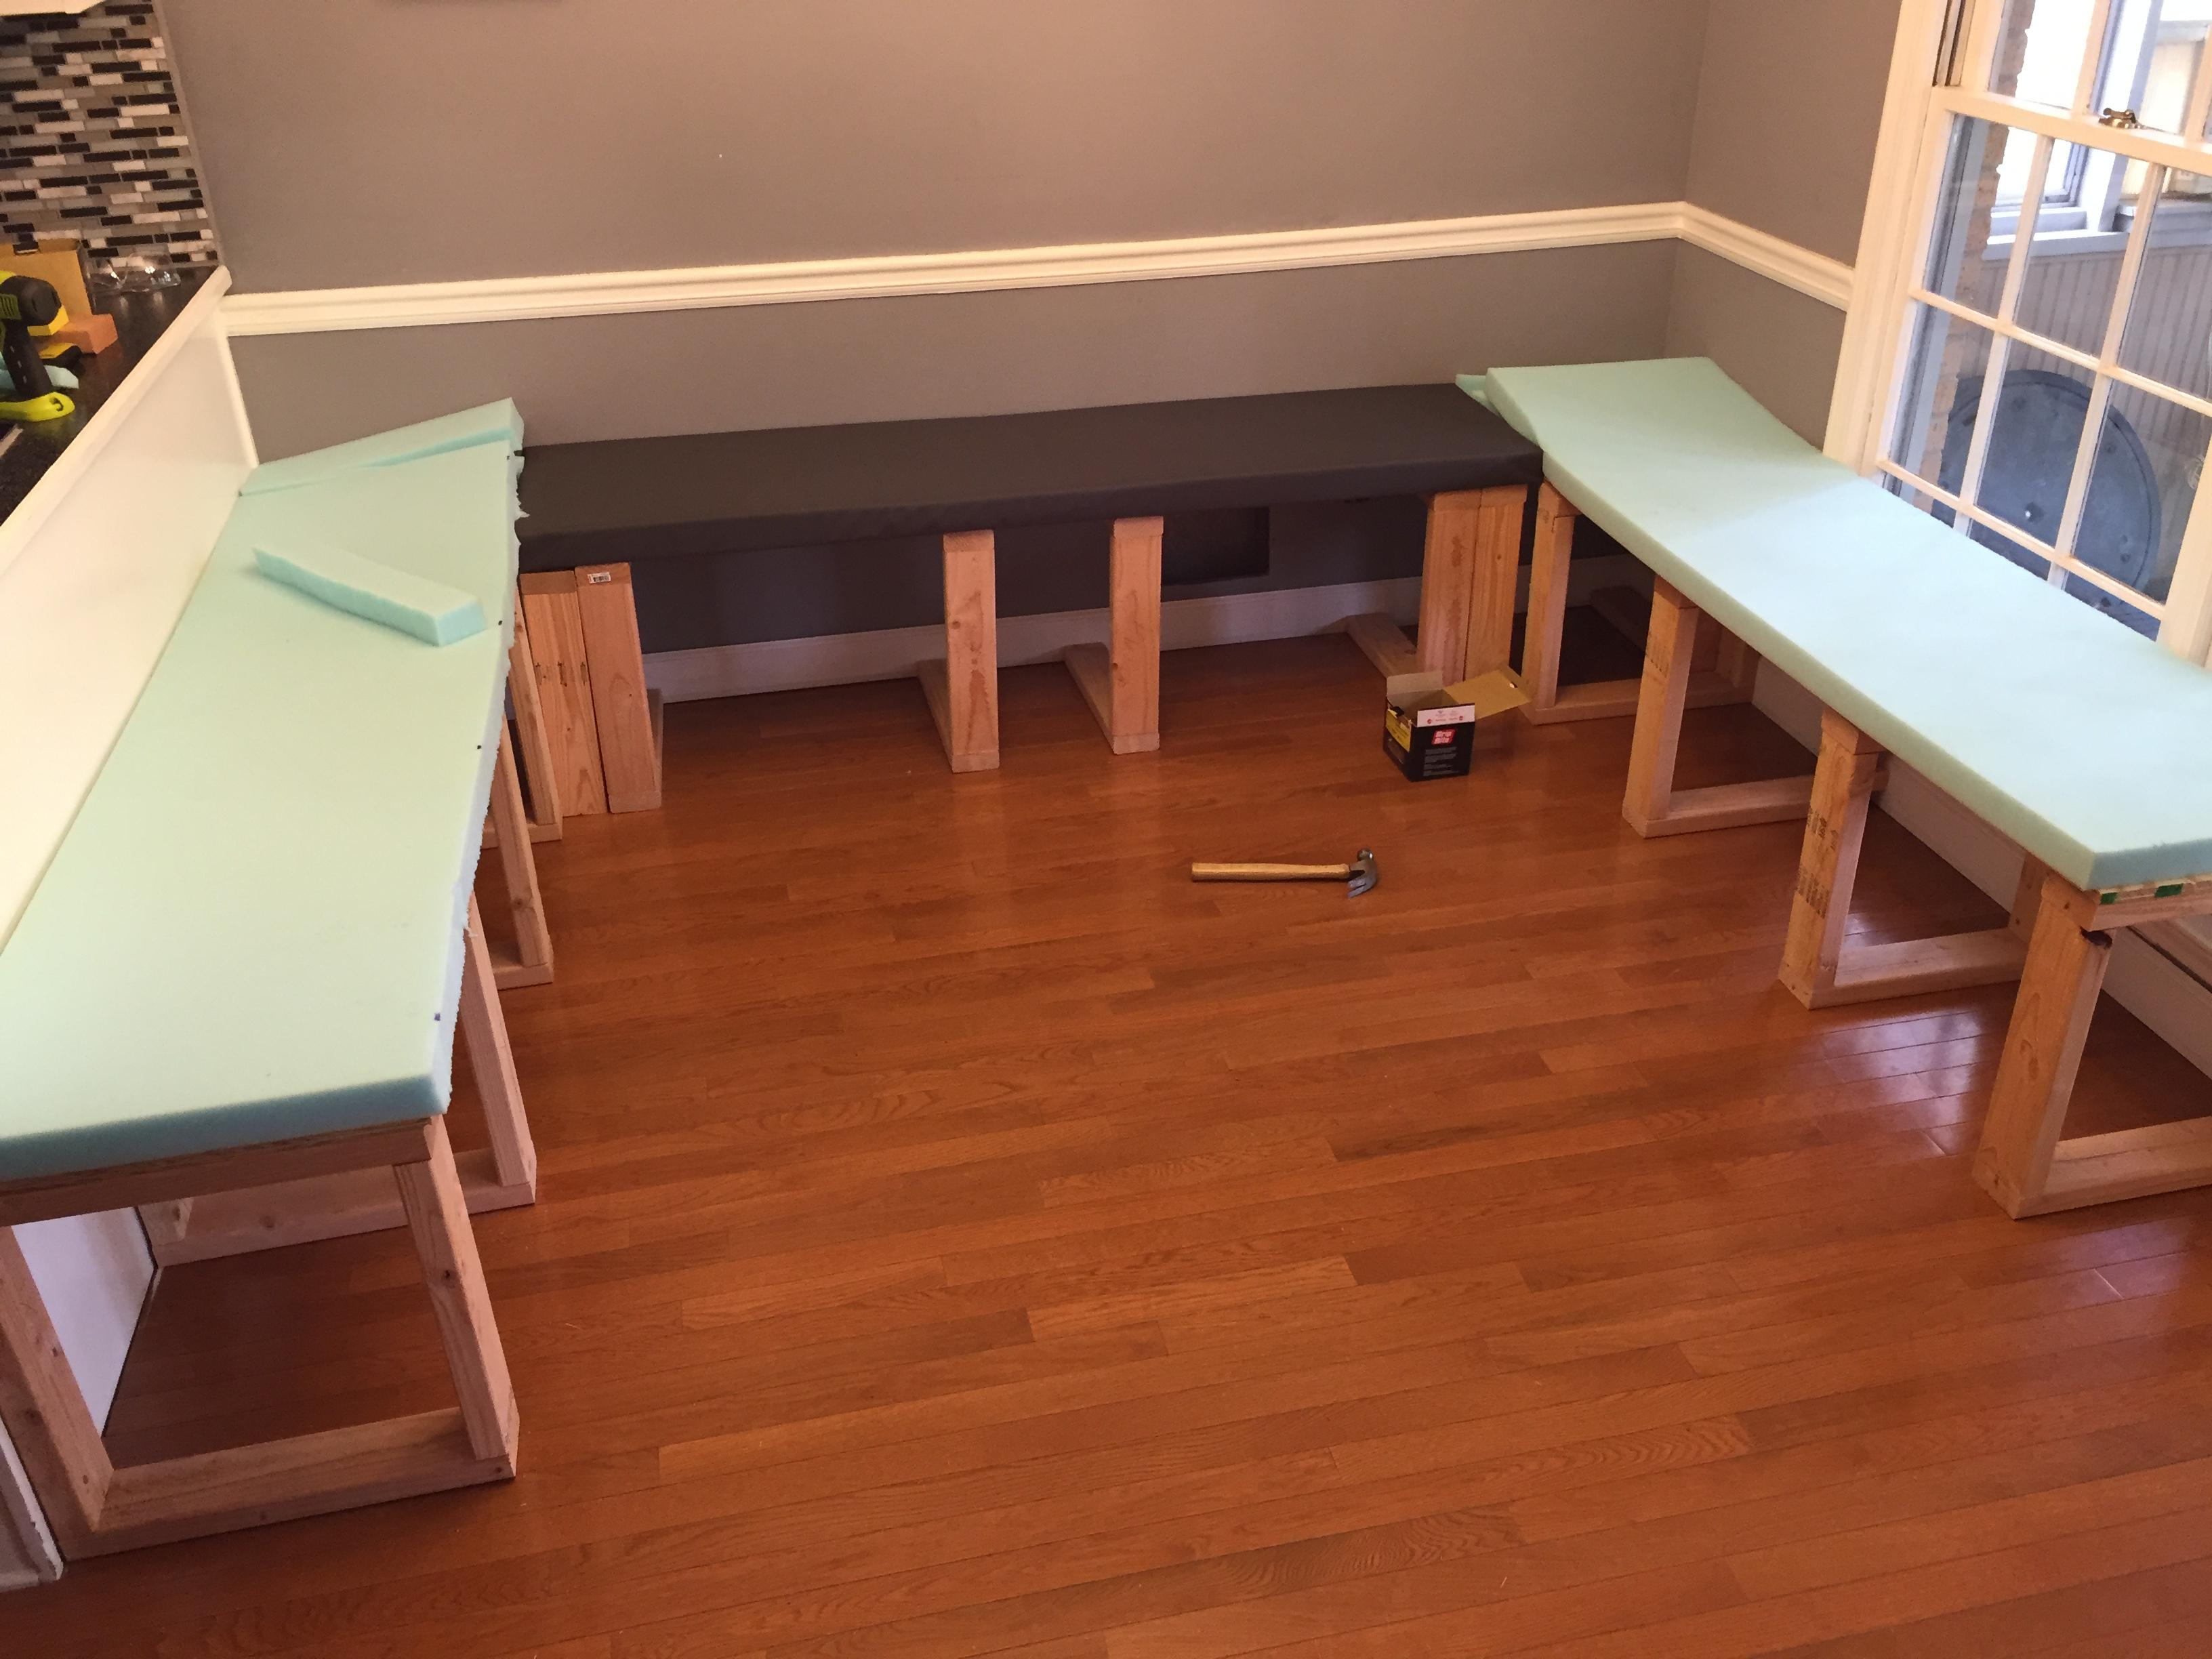 prodigious How To Build A Booth Bench Part - 6: My Kitchen Table Seems So Boring After I Saw This DIY Dining Booth